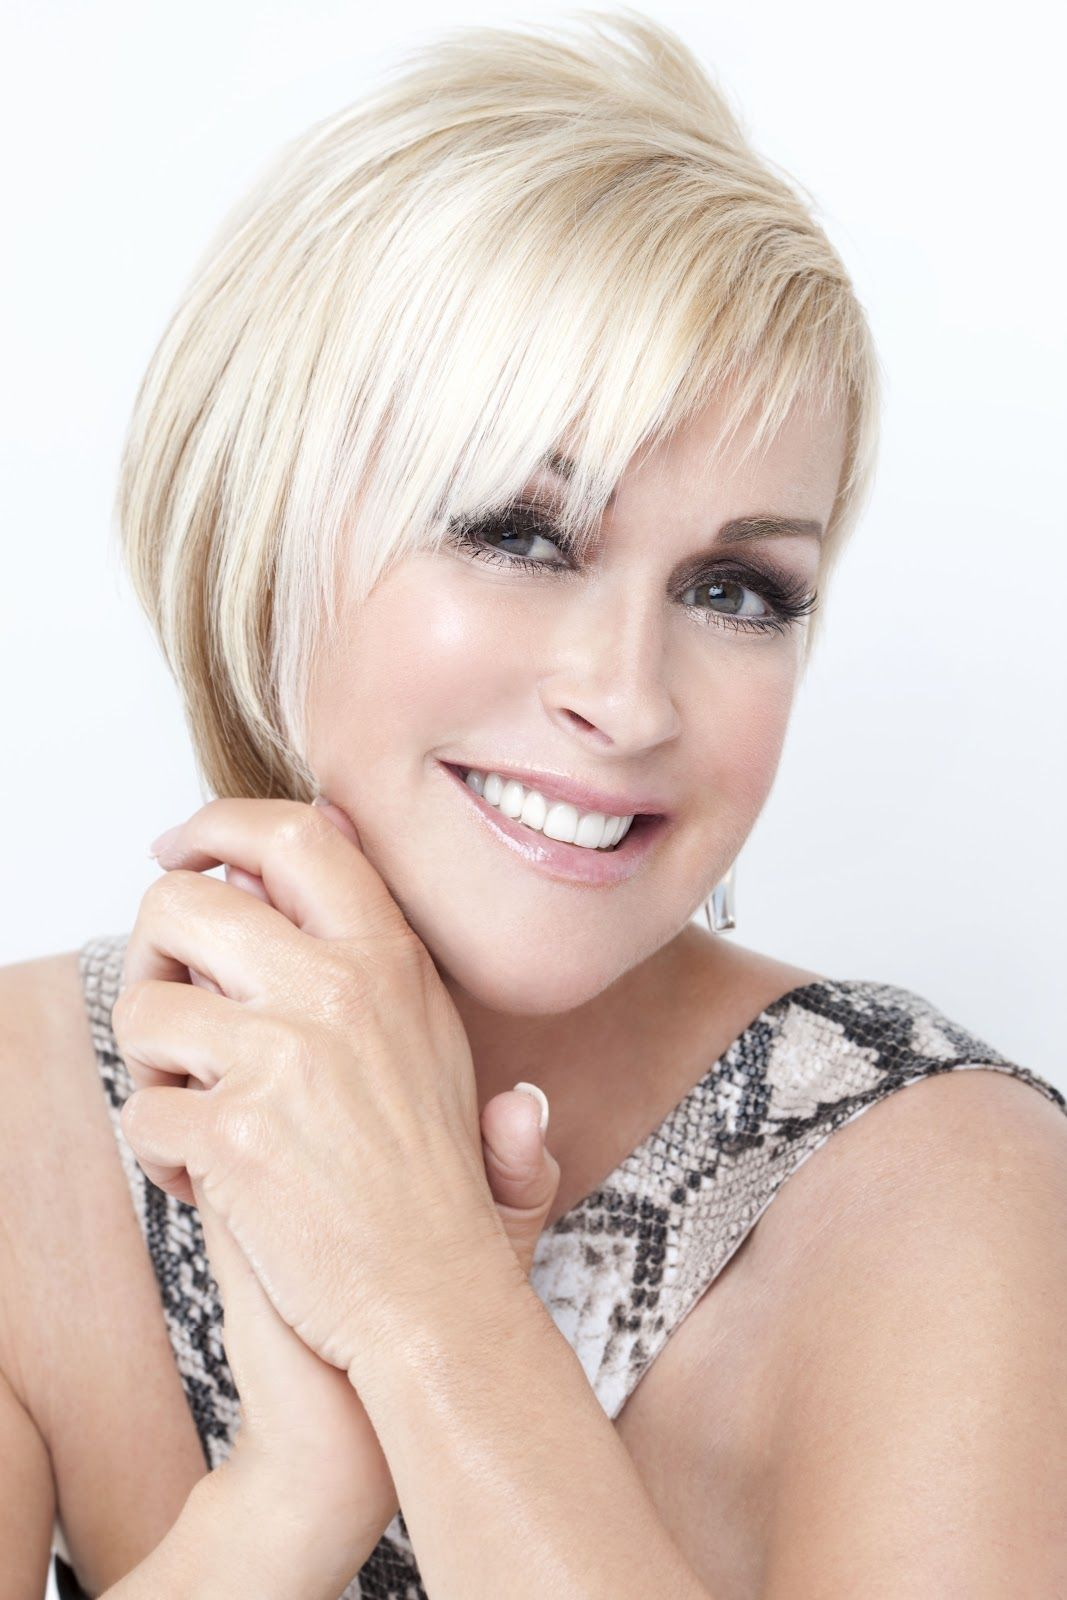 lorrie morgan, age 53. | country music, golden oldies, rock